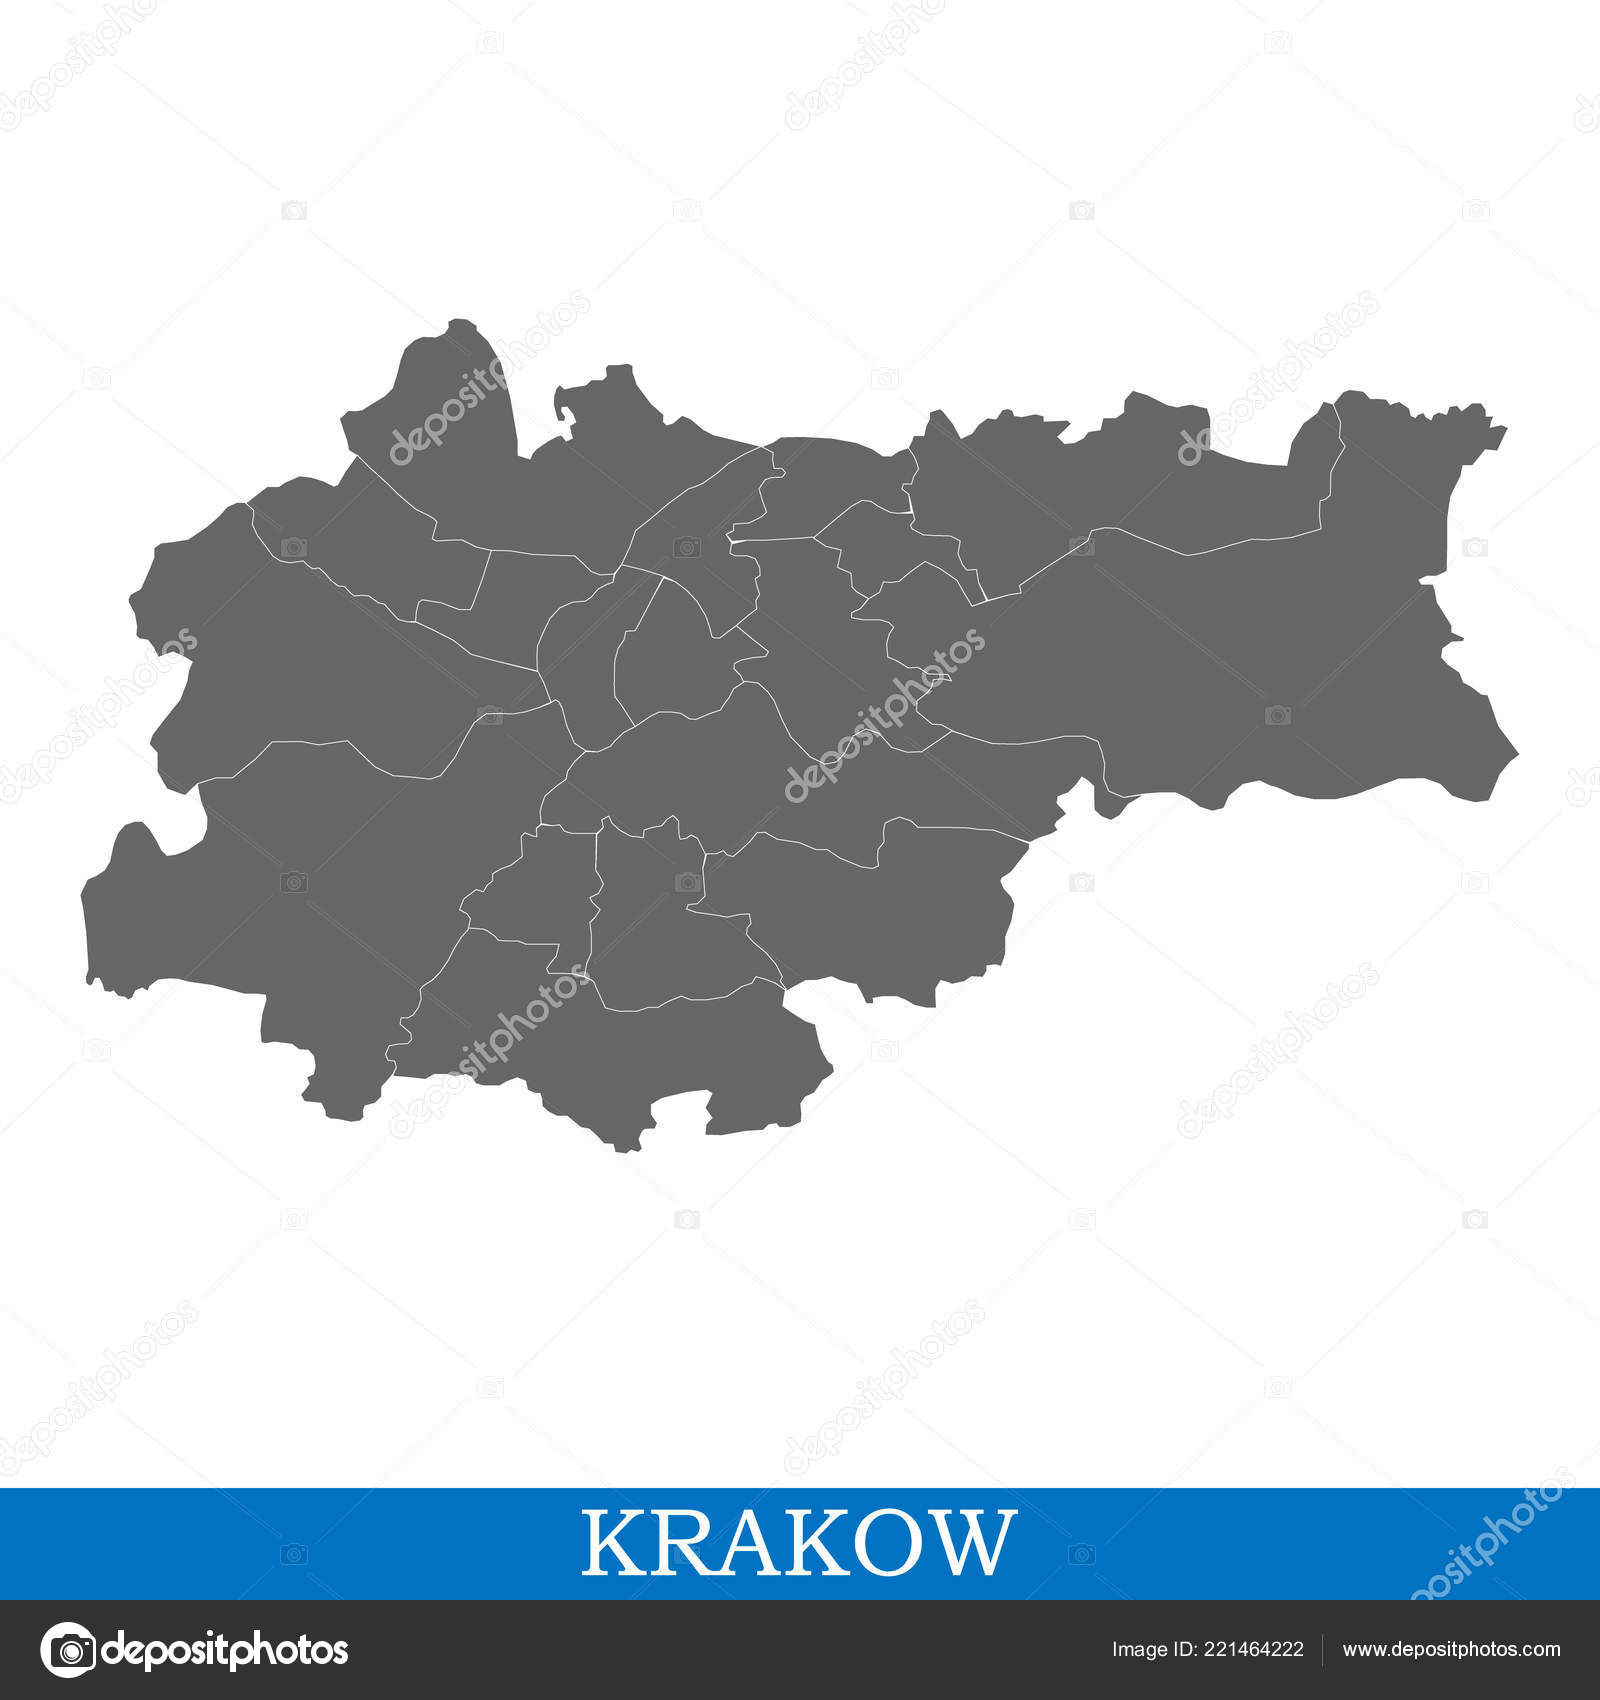 High Quality Map Krakow City Poland Borders Districts — Stock Vector on buenos aires world map, bulgaria world map, krakow poland map, jakarta world map, quito world map, sicily world map, ashdod port map,